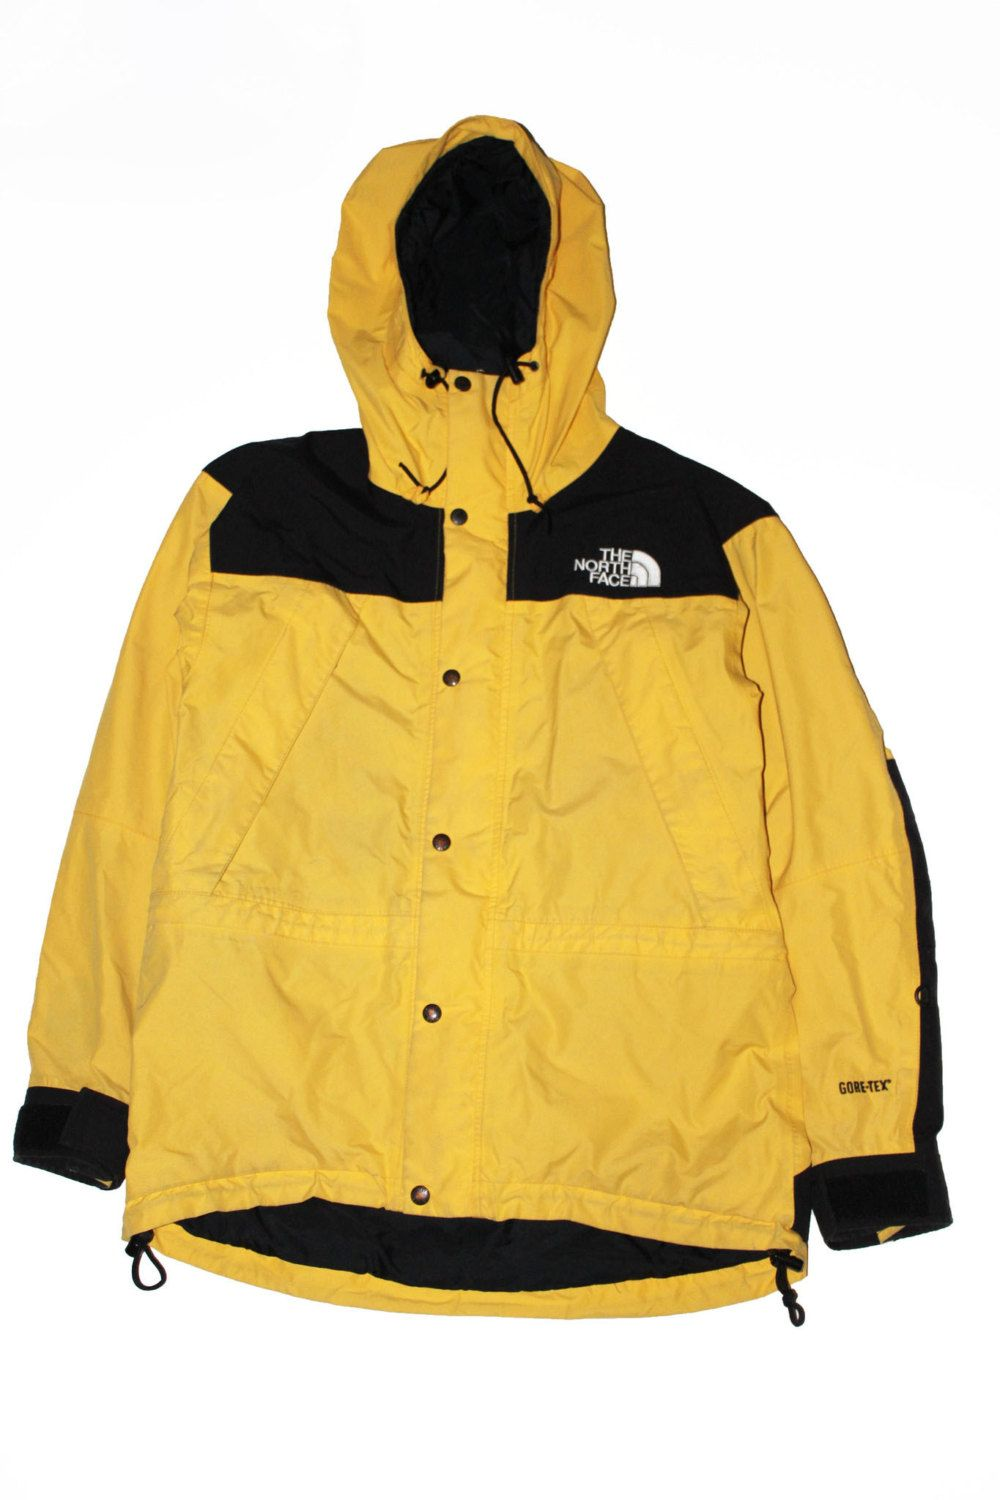 1e87c26dbfd3 Vintage 90s Women s The North Face Mountain Guide Gore-Tex jacket  Yellow Black Size M by VapeoVintage on Etsy